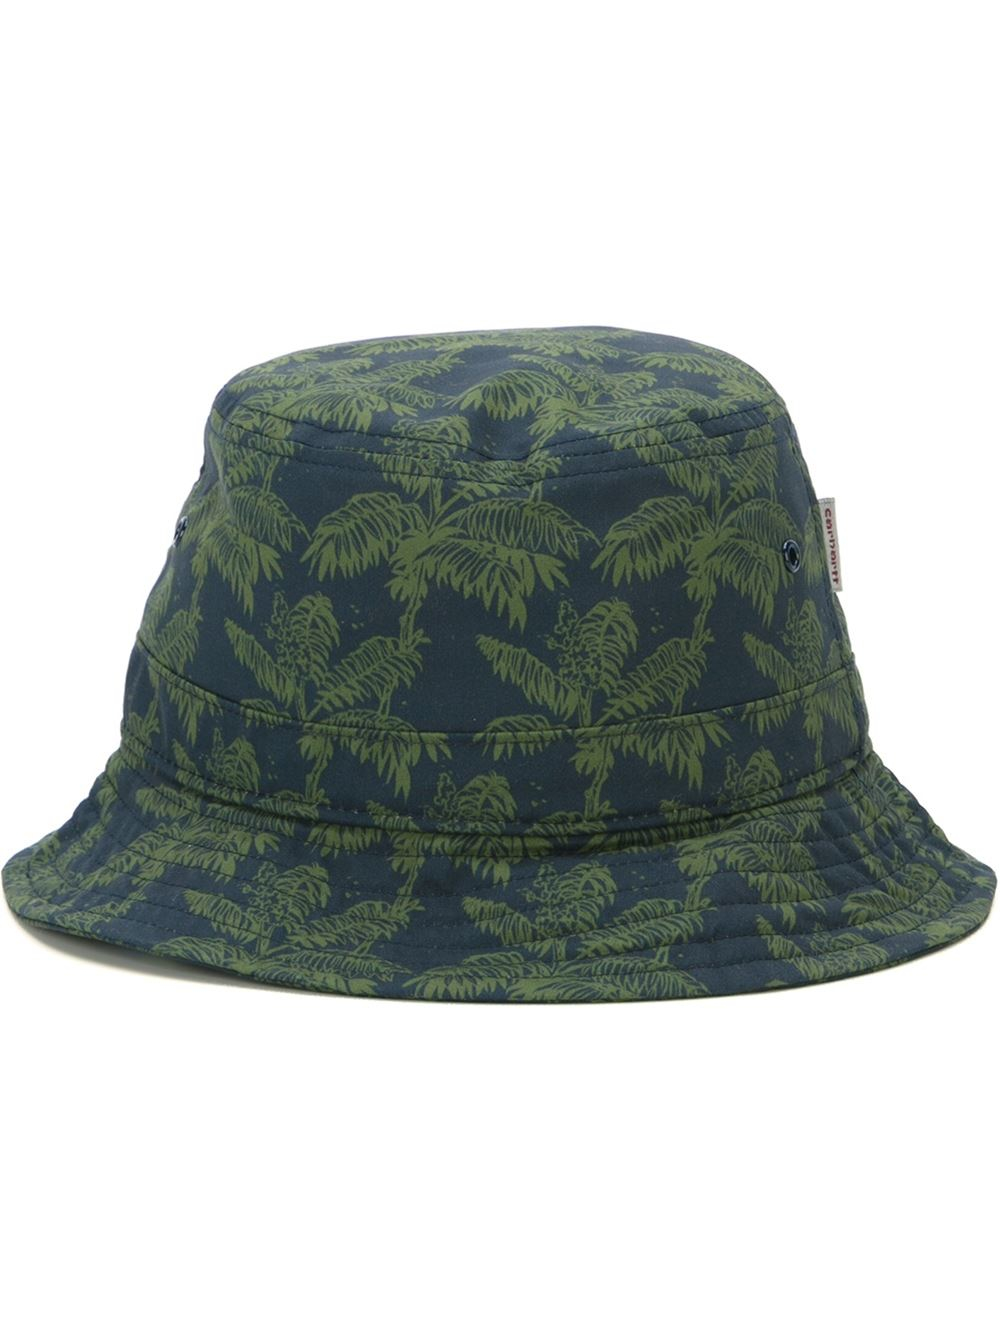 Lyst - Carhartt Printed Bucket Hat in Blue for Men ce6894480ffa